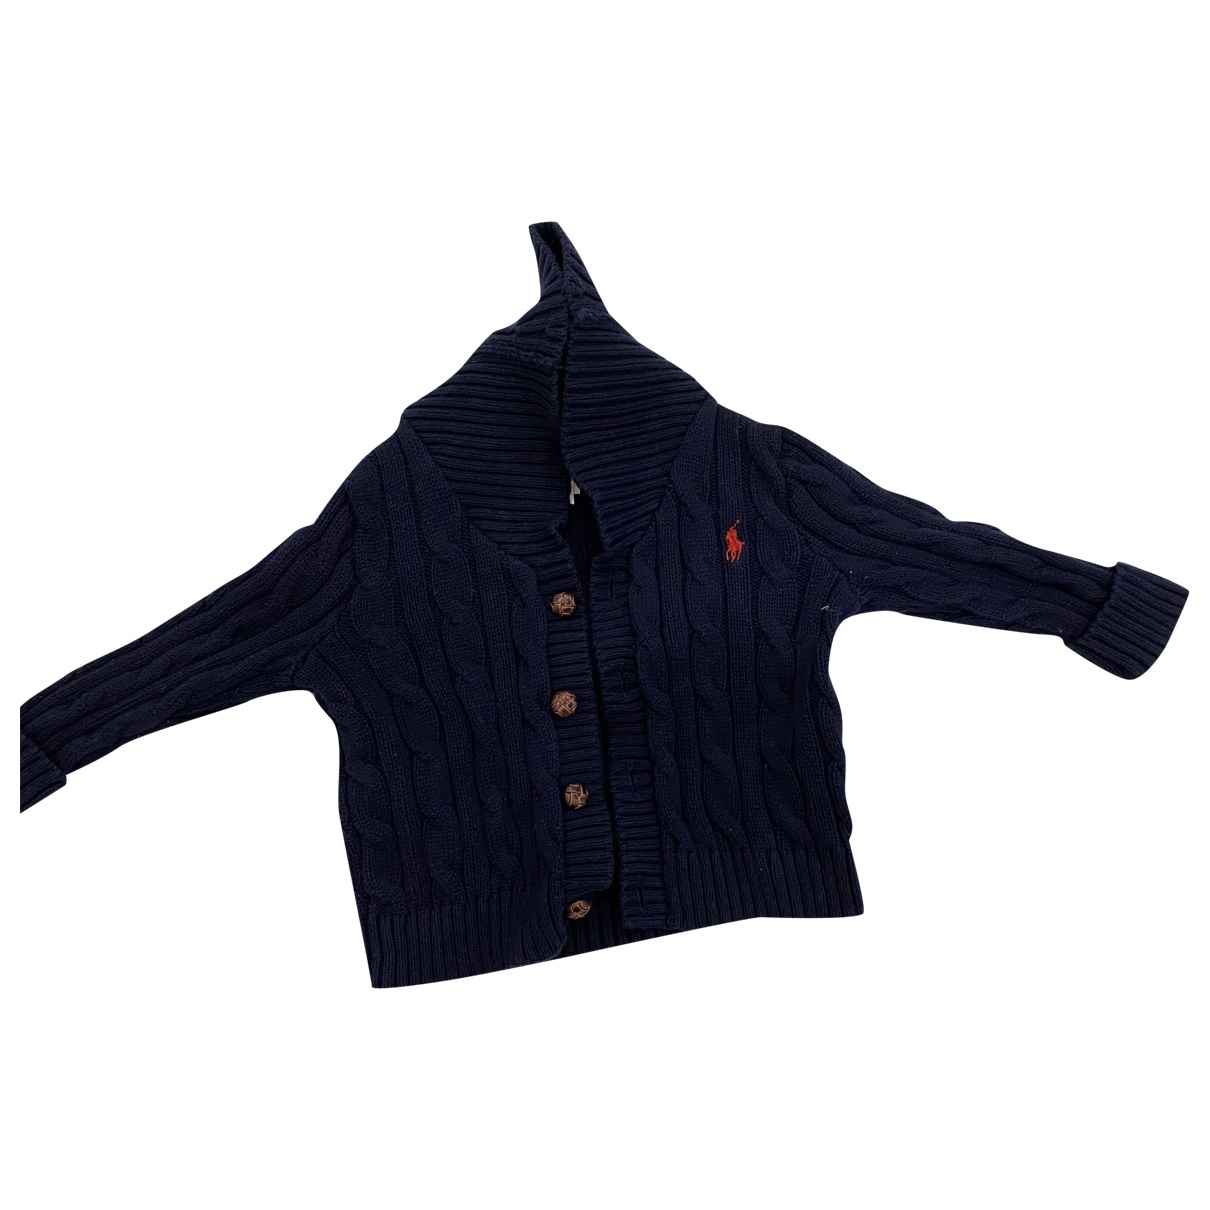 Polo Ralph Lauren \N Blue Wool Knitwear for Kids 9 months - until 28 inches UK